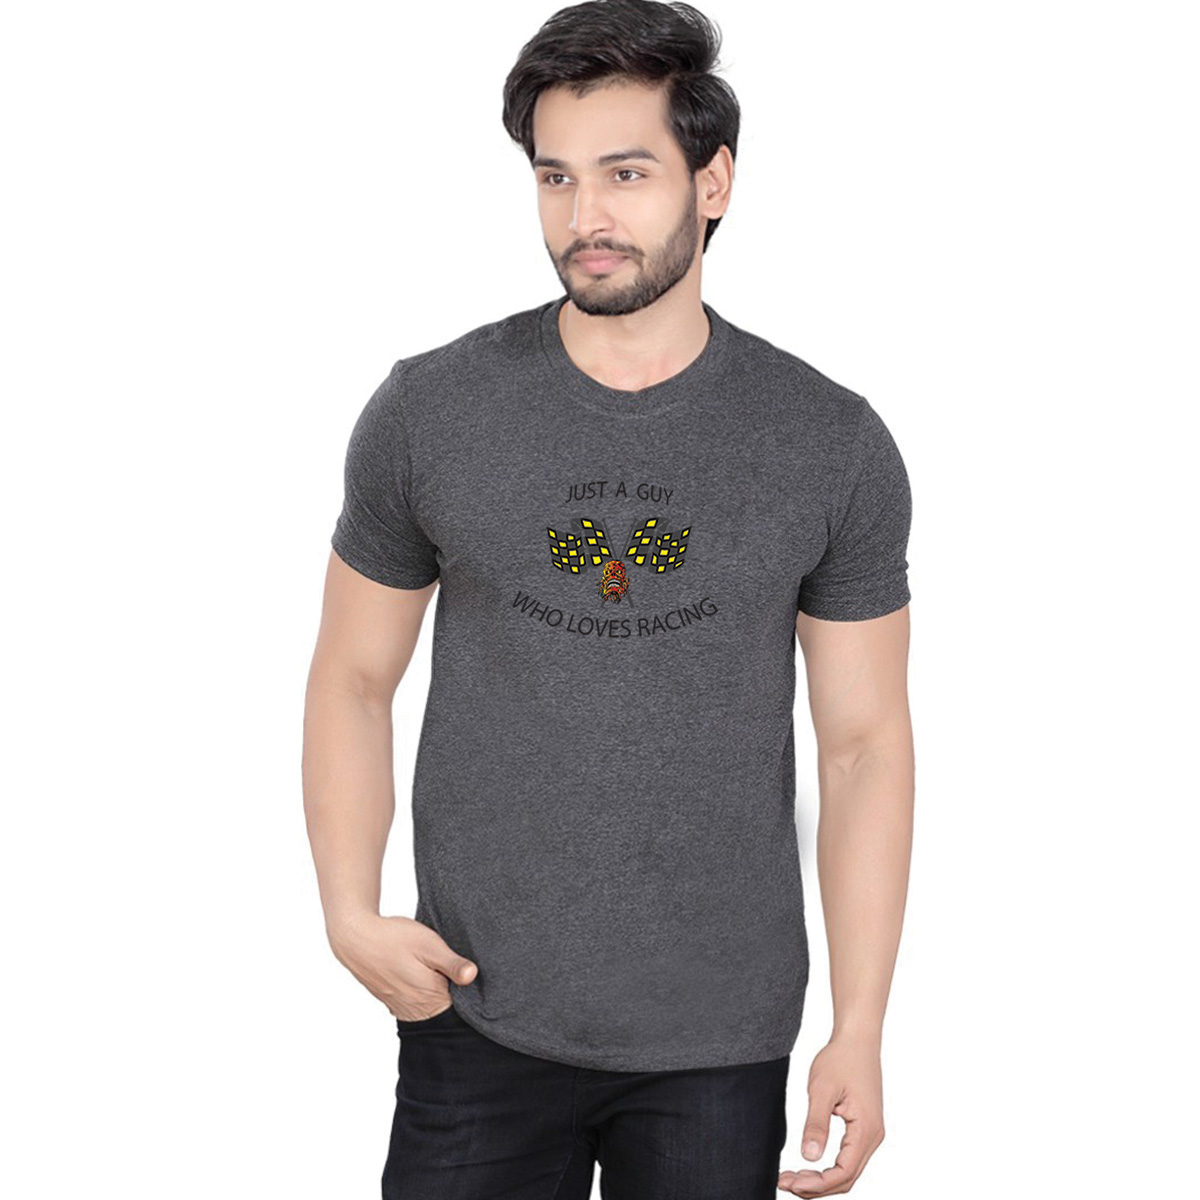 Krissxross Men's 100 % Cotton Premium Bio Washed Grey DTG Graphic Printed T-Shirt - (Just A Guy Who Loves Racing )